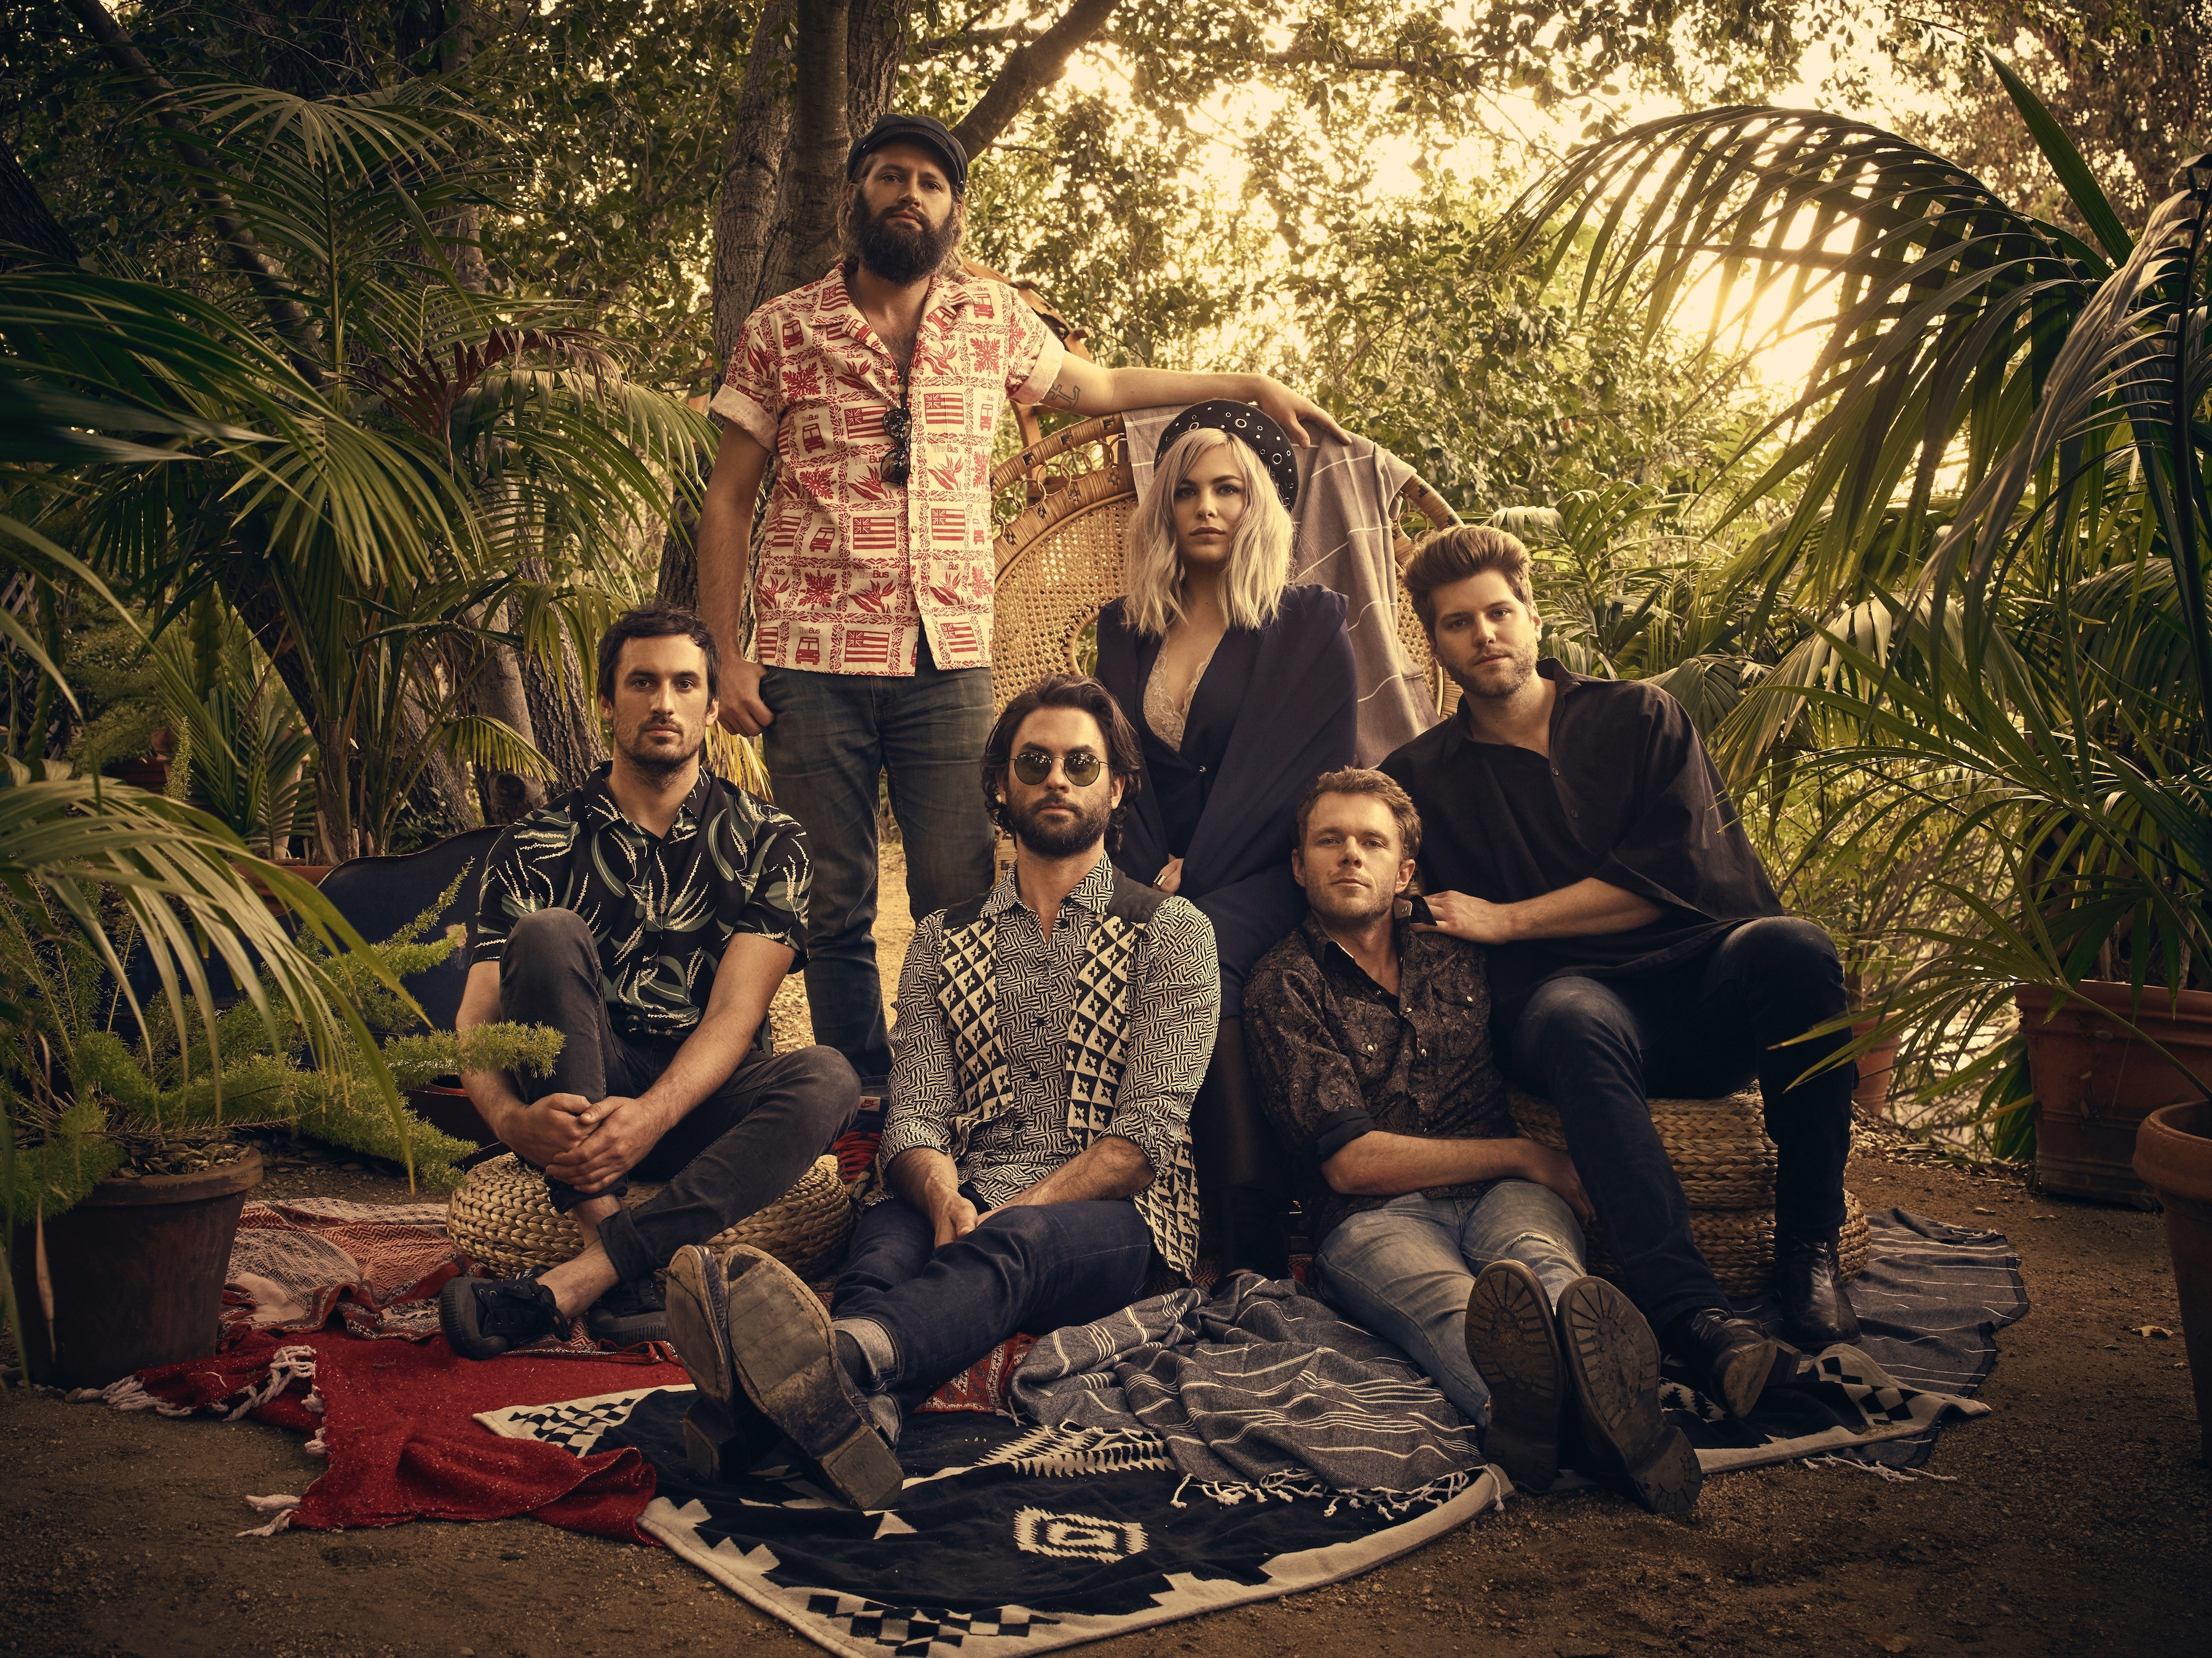 The Head and the Heart and Nathaniel Rateliff & the Night Sweats to